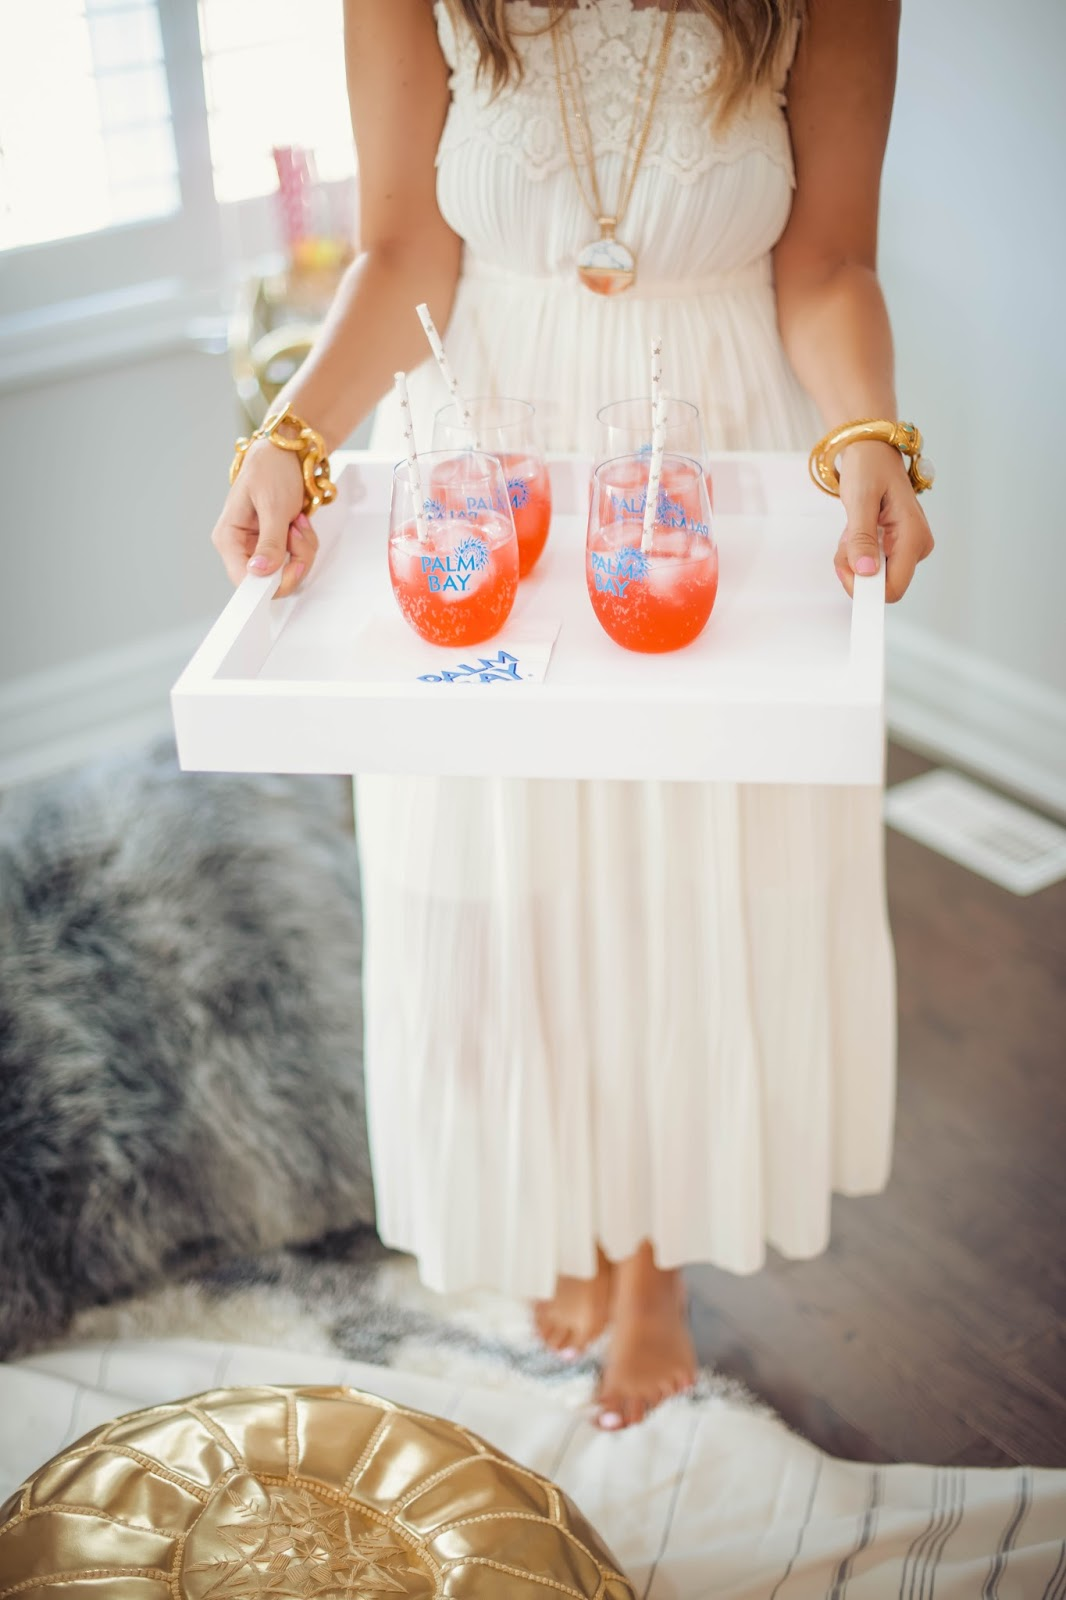 Krystin serving up some fun Palm Bay cocktails!